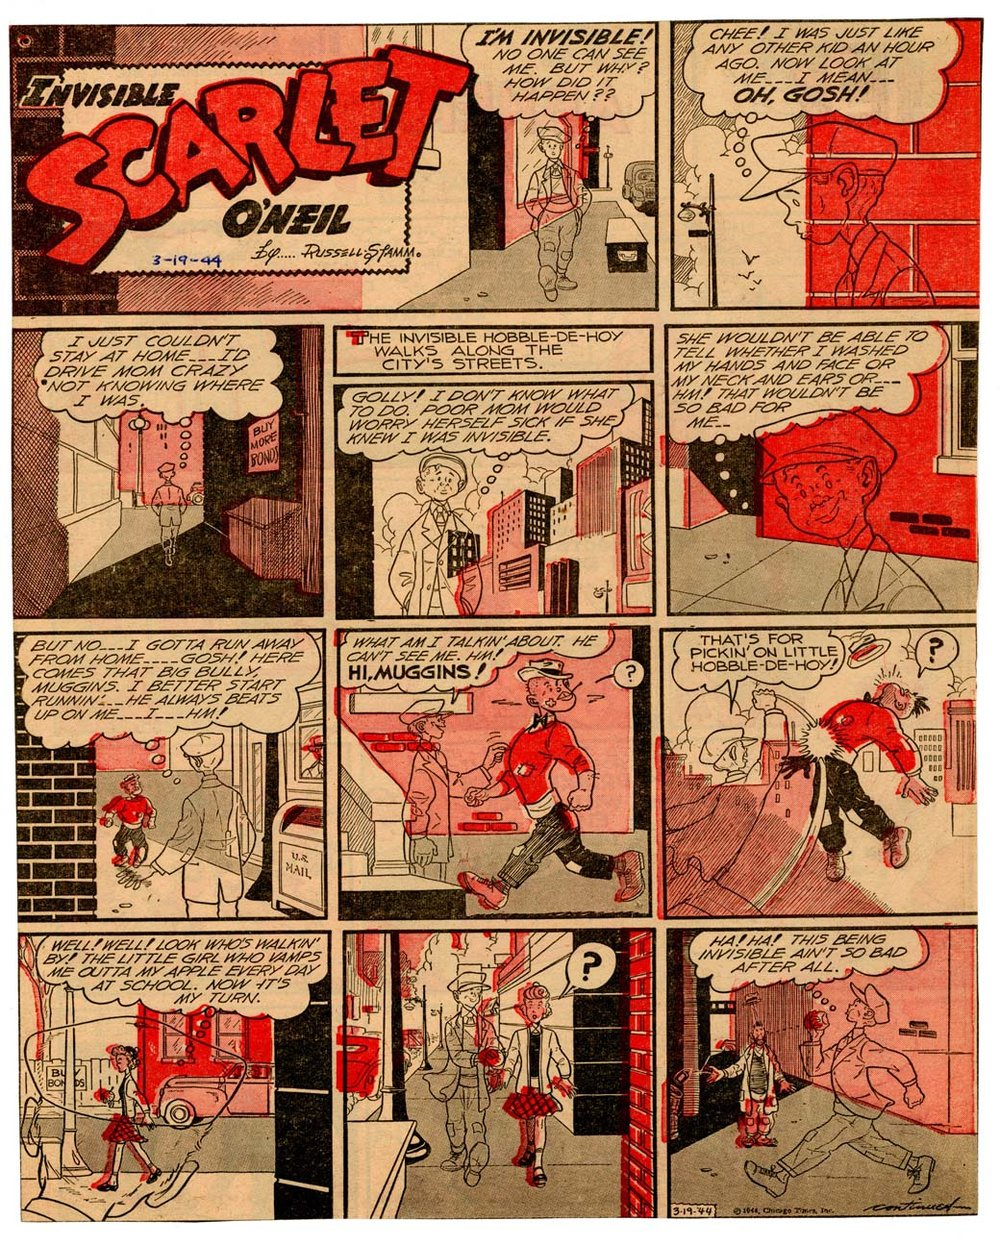 INVISIBLE-SCARLET-ONEIL-194403191.jpg